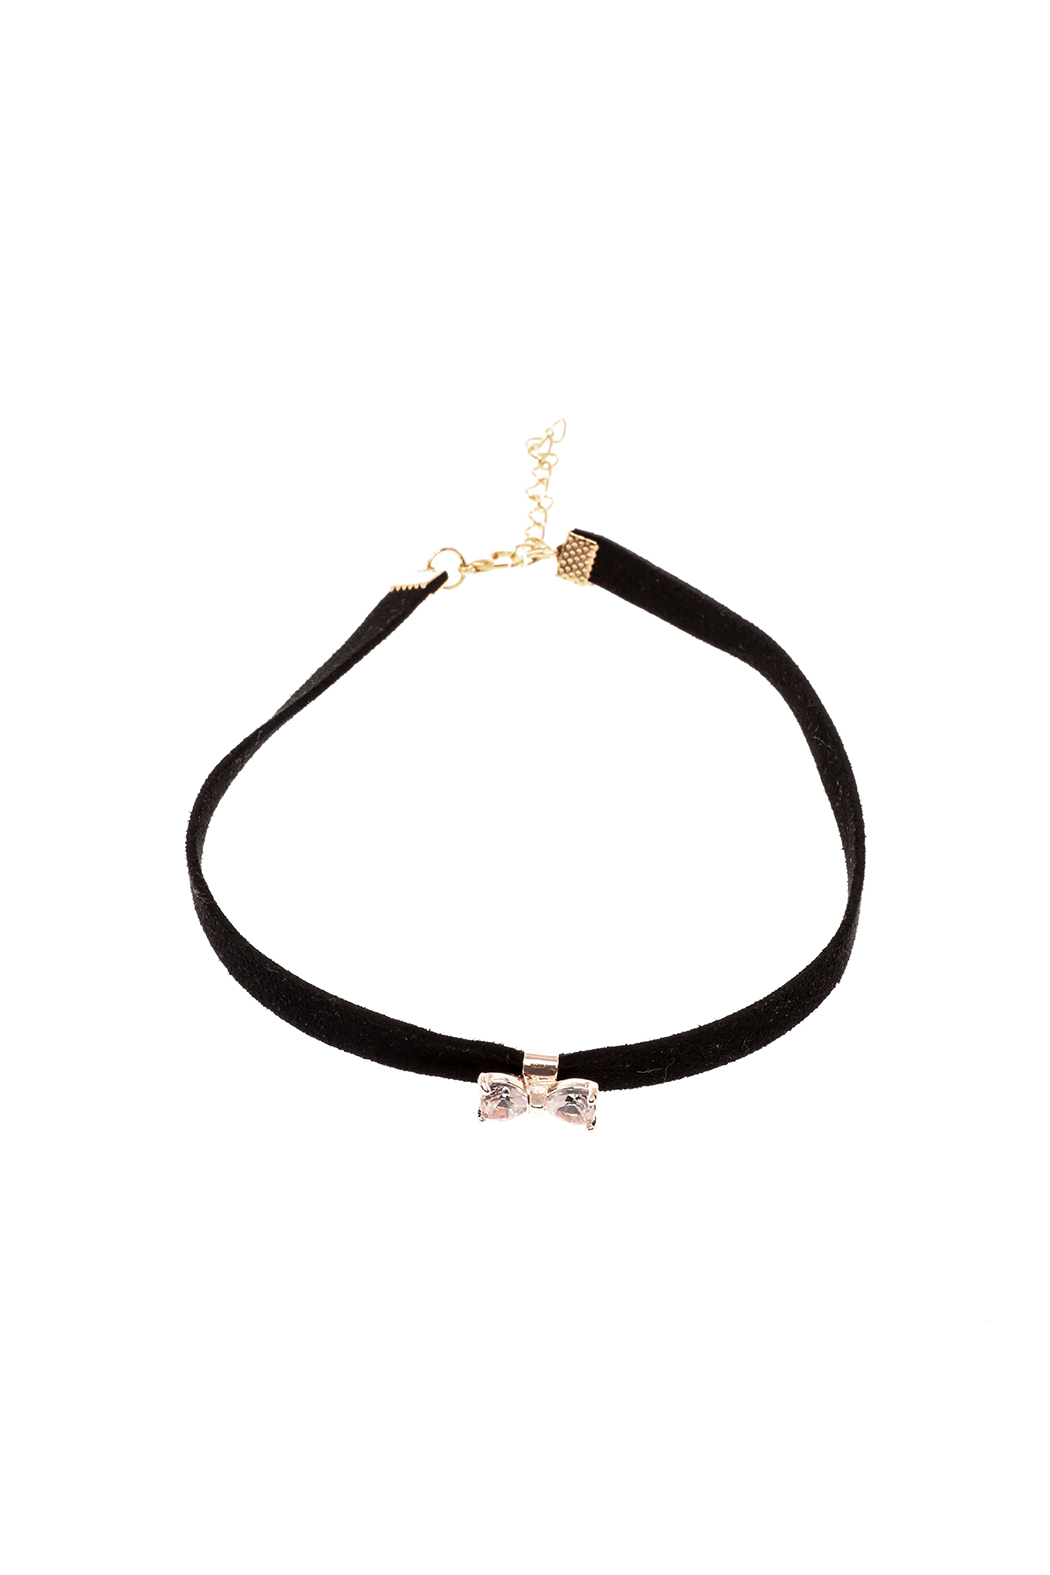 Made It! Suede Bow Choker Necklace from New York City by ... 9df2679e5